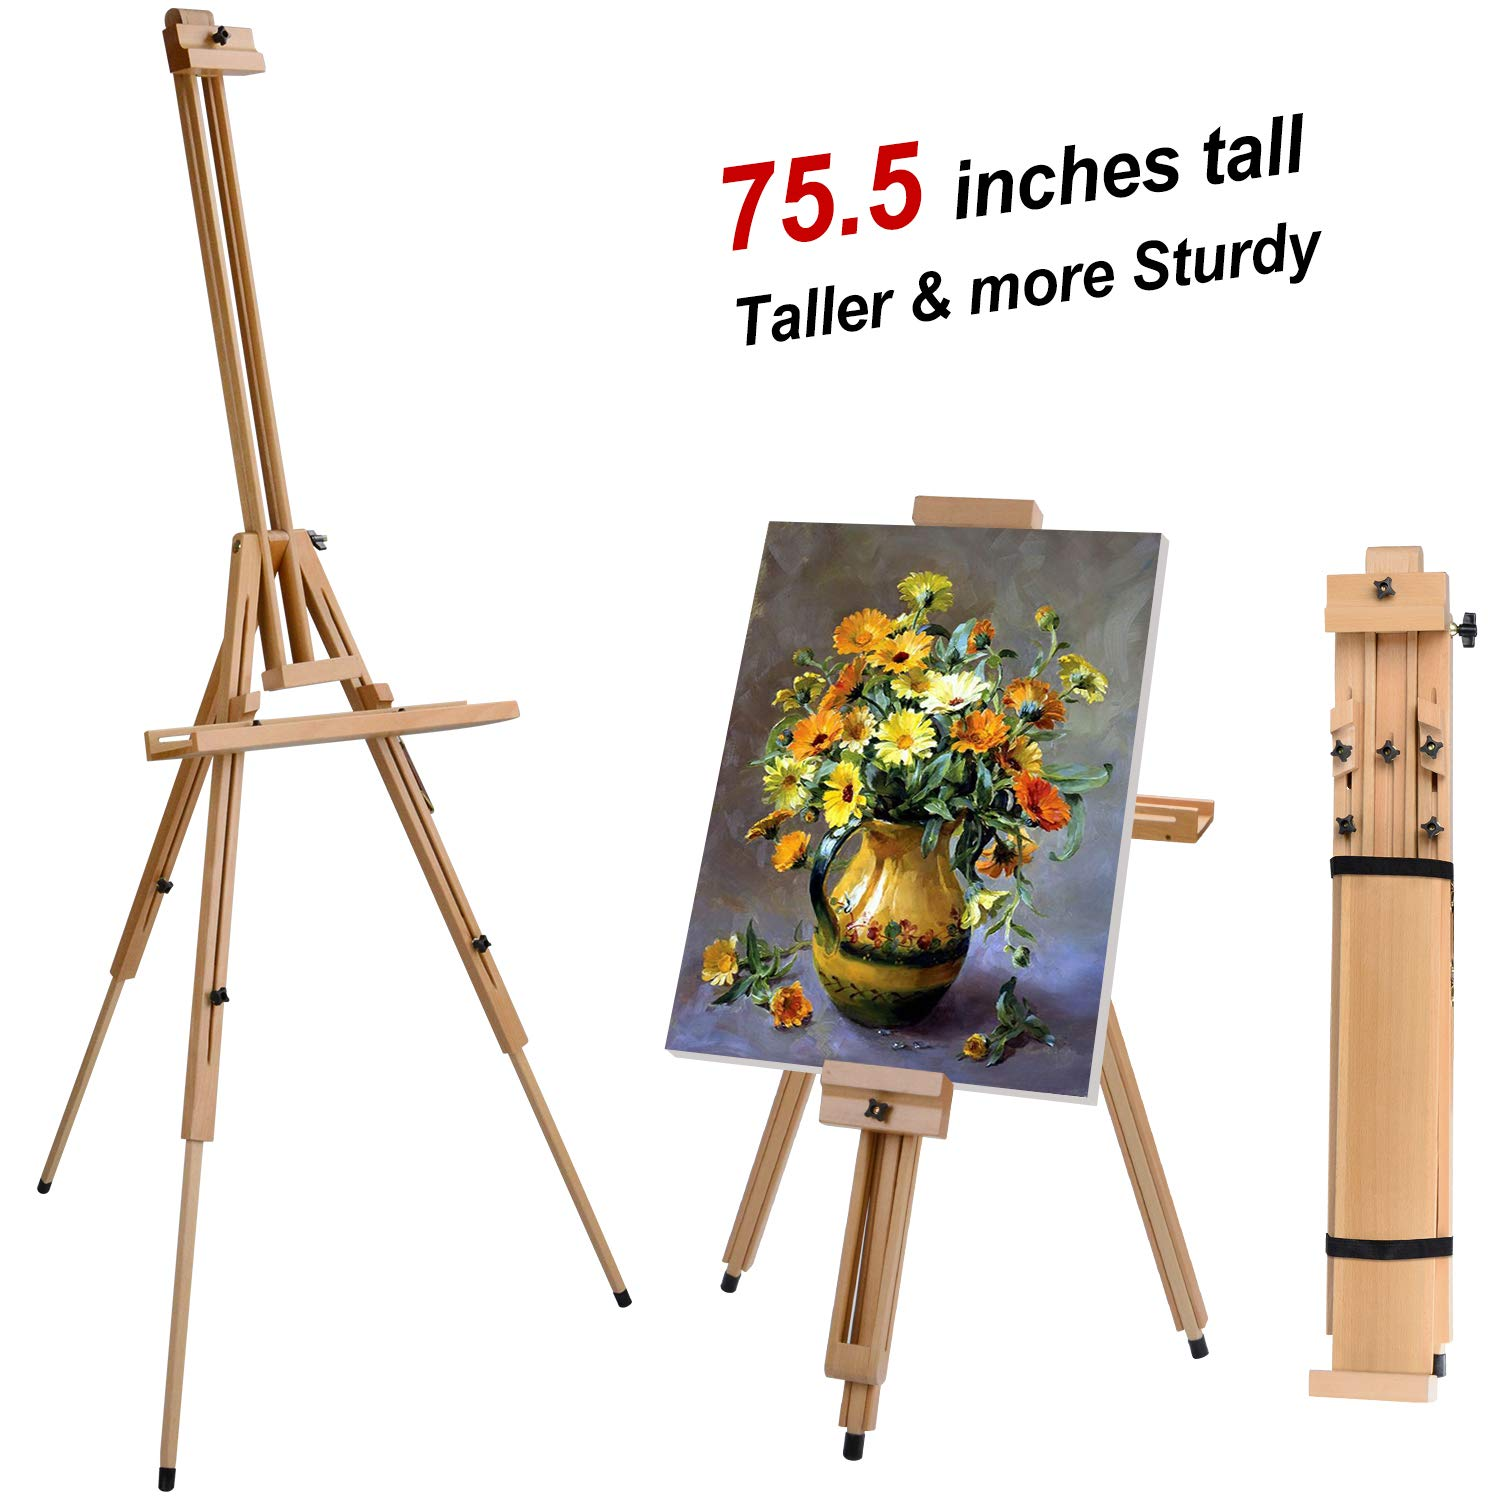 T-SIGN Wood Painting Easel Stand, Portable Art Floor Tripod Beech Easel, Foldable Design, Adjustable Height 36.5 to 75.5 Inches, Adjustable Large Tray for Painting, Sketching, Display by T-SIGN